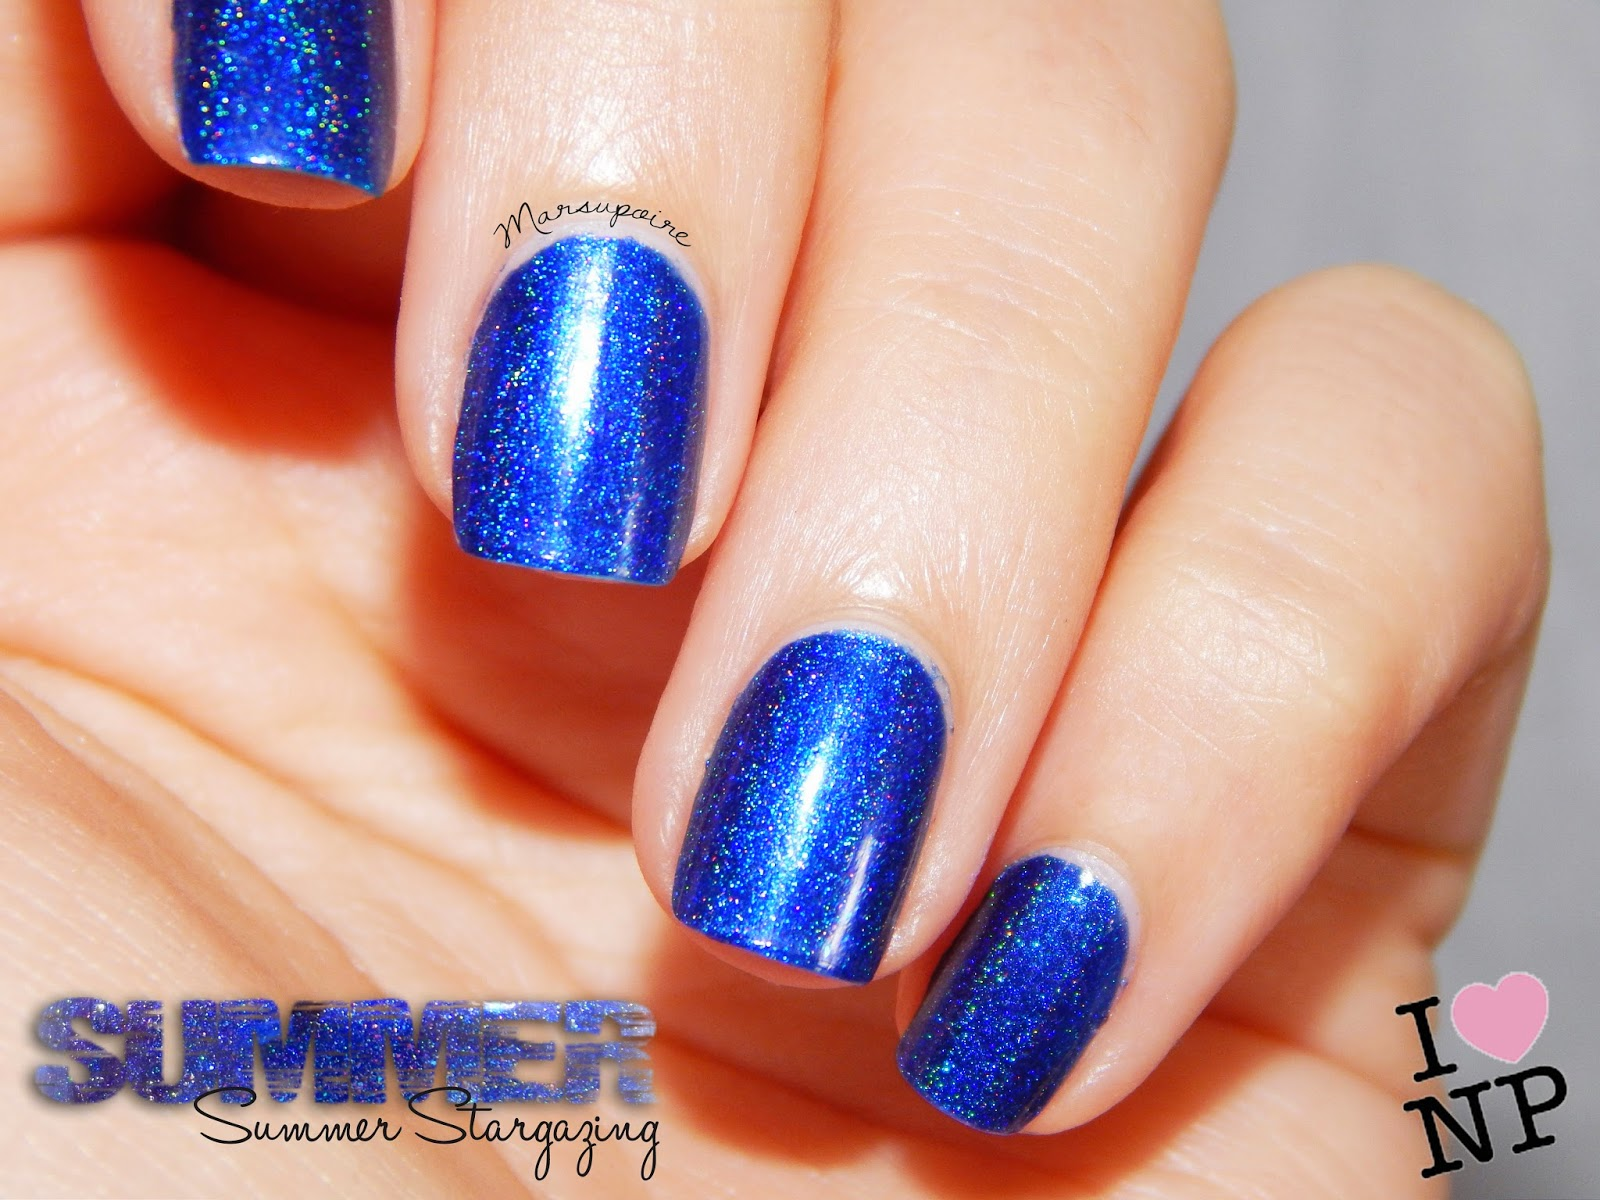 Vernis_ILNP_summer stargazing_flash